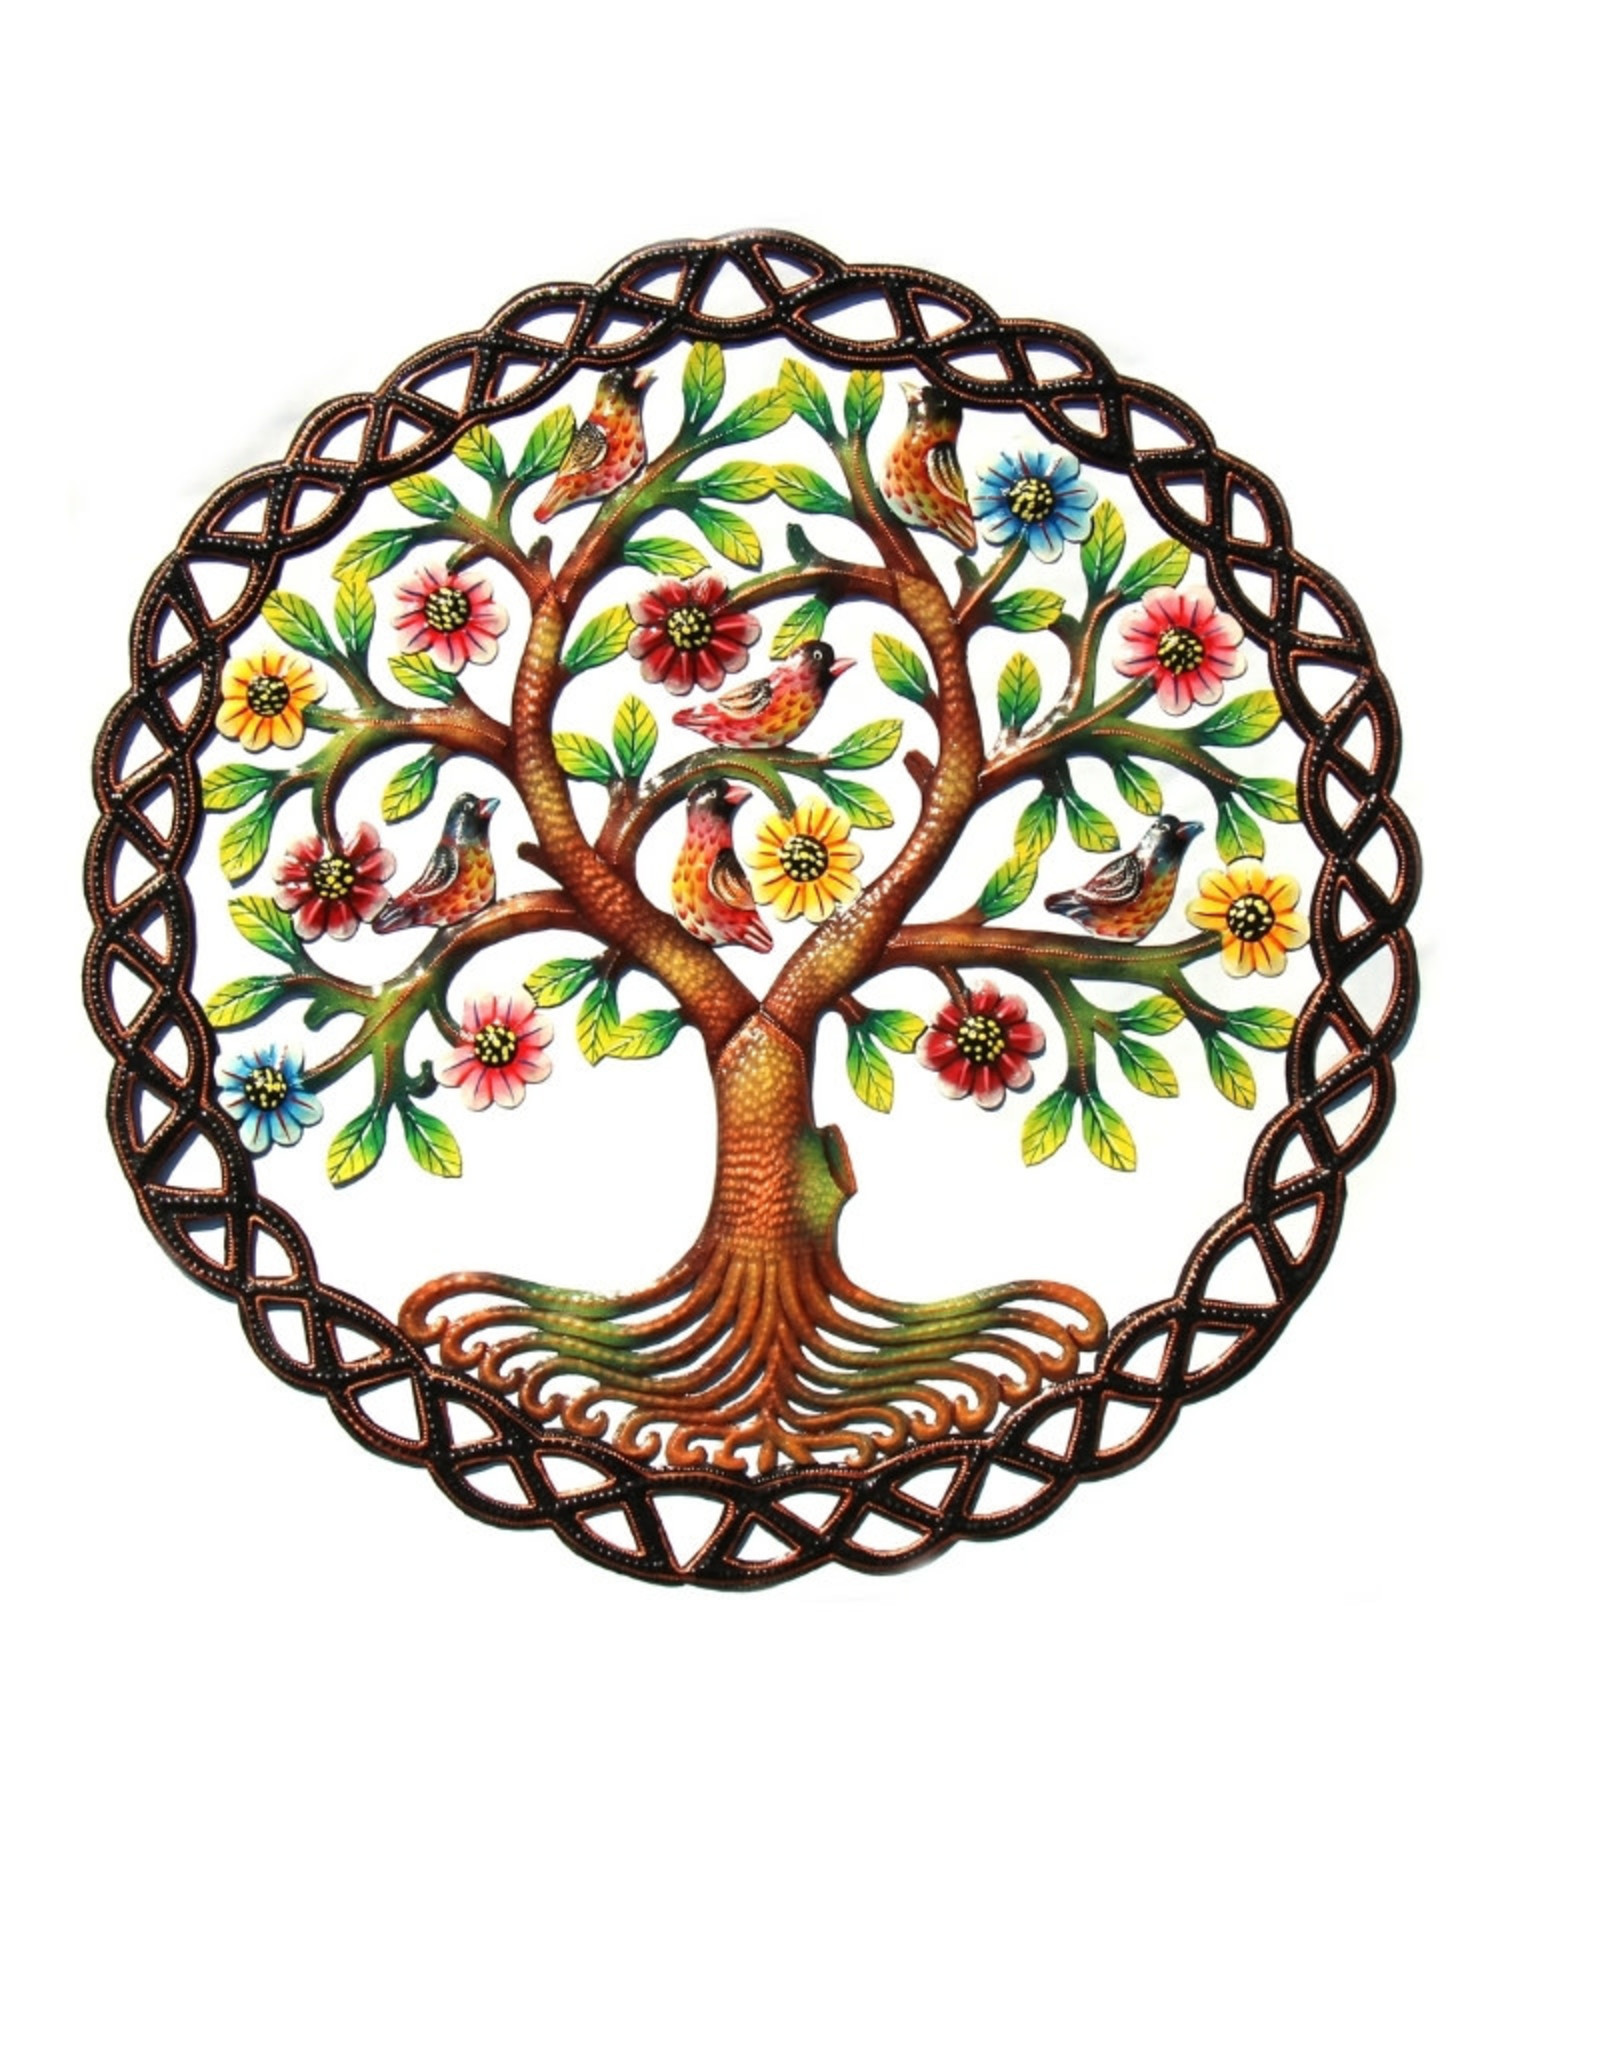 Global Crafts Rooted Tree of Life Painted Haitian